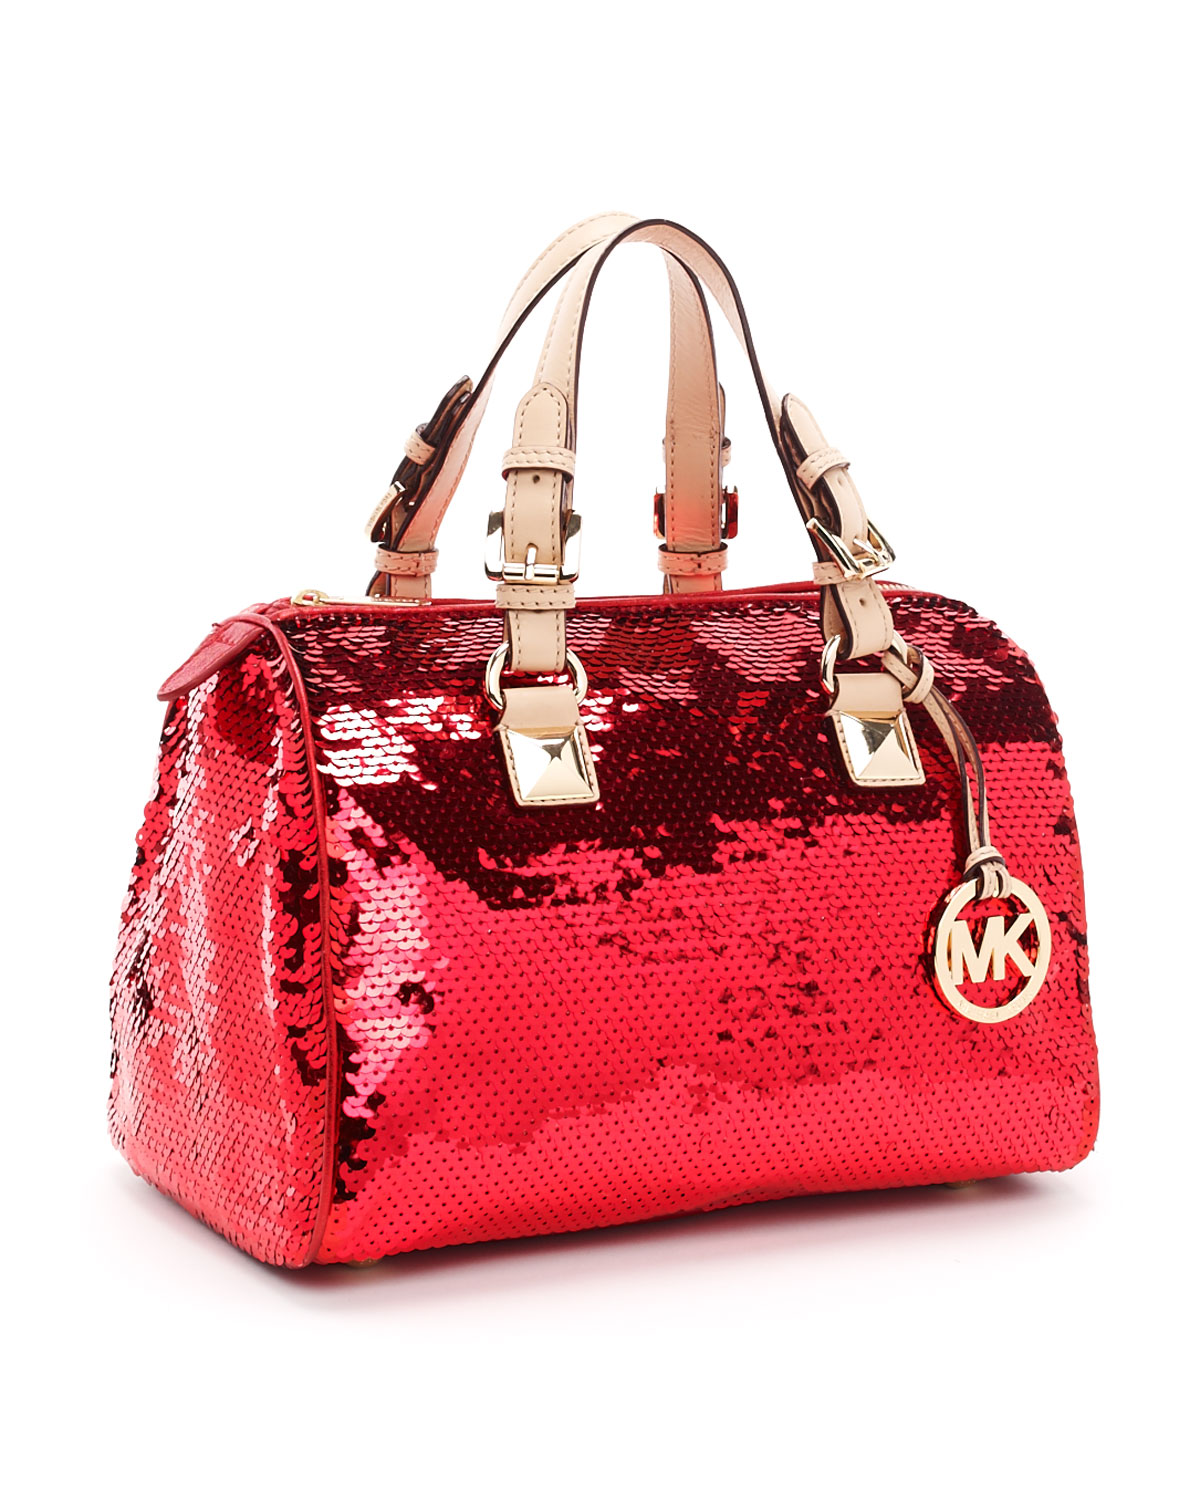 a75ad5fdc3db2c Gallery. Previously sold at: Neiman Marcus · Women's Michael Kors Grayson